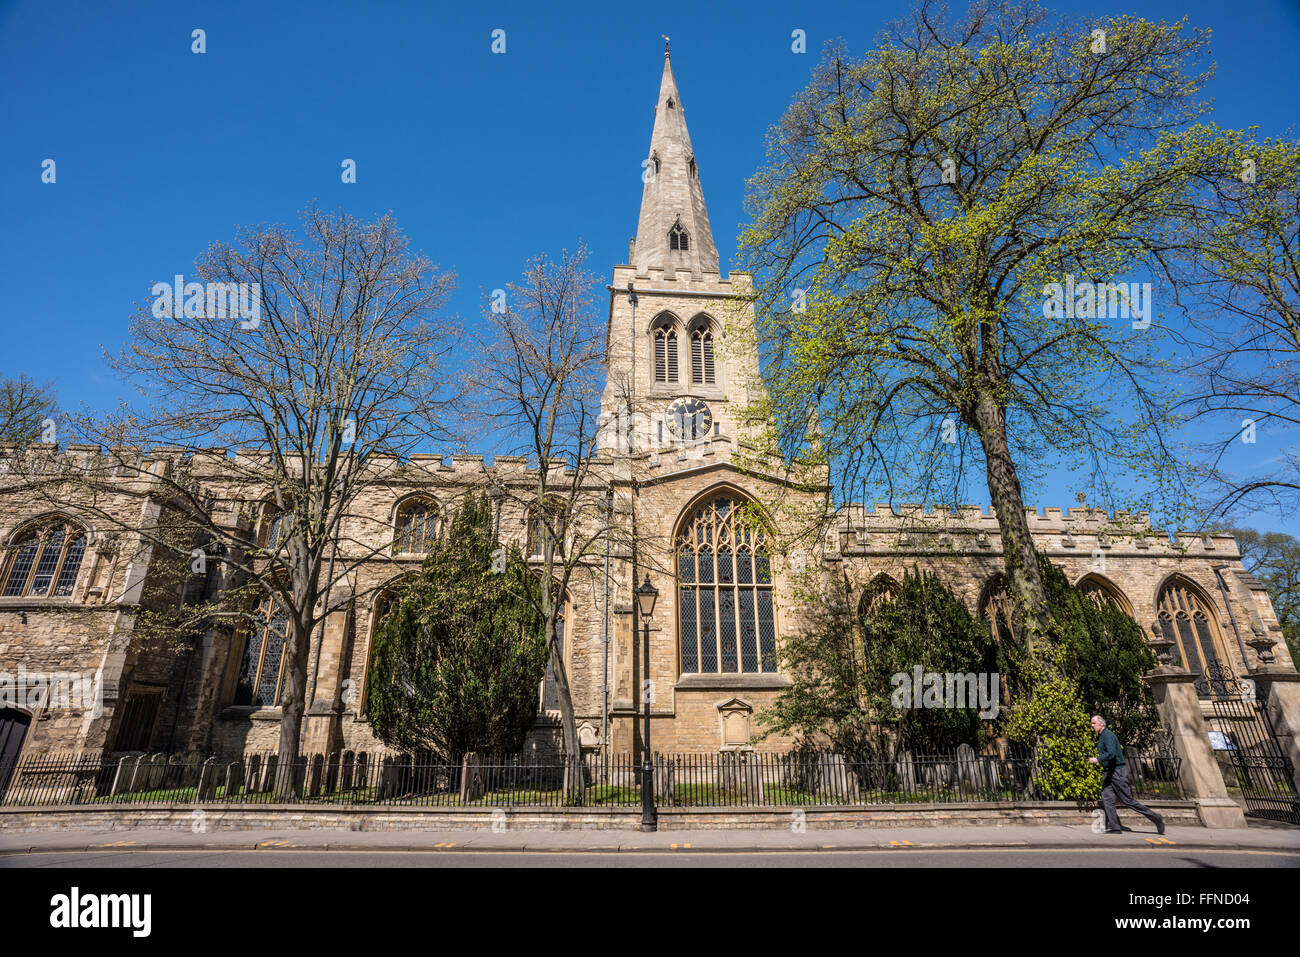 St. Paul's Church, Bedford, Bedfordshire - Stock Image